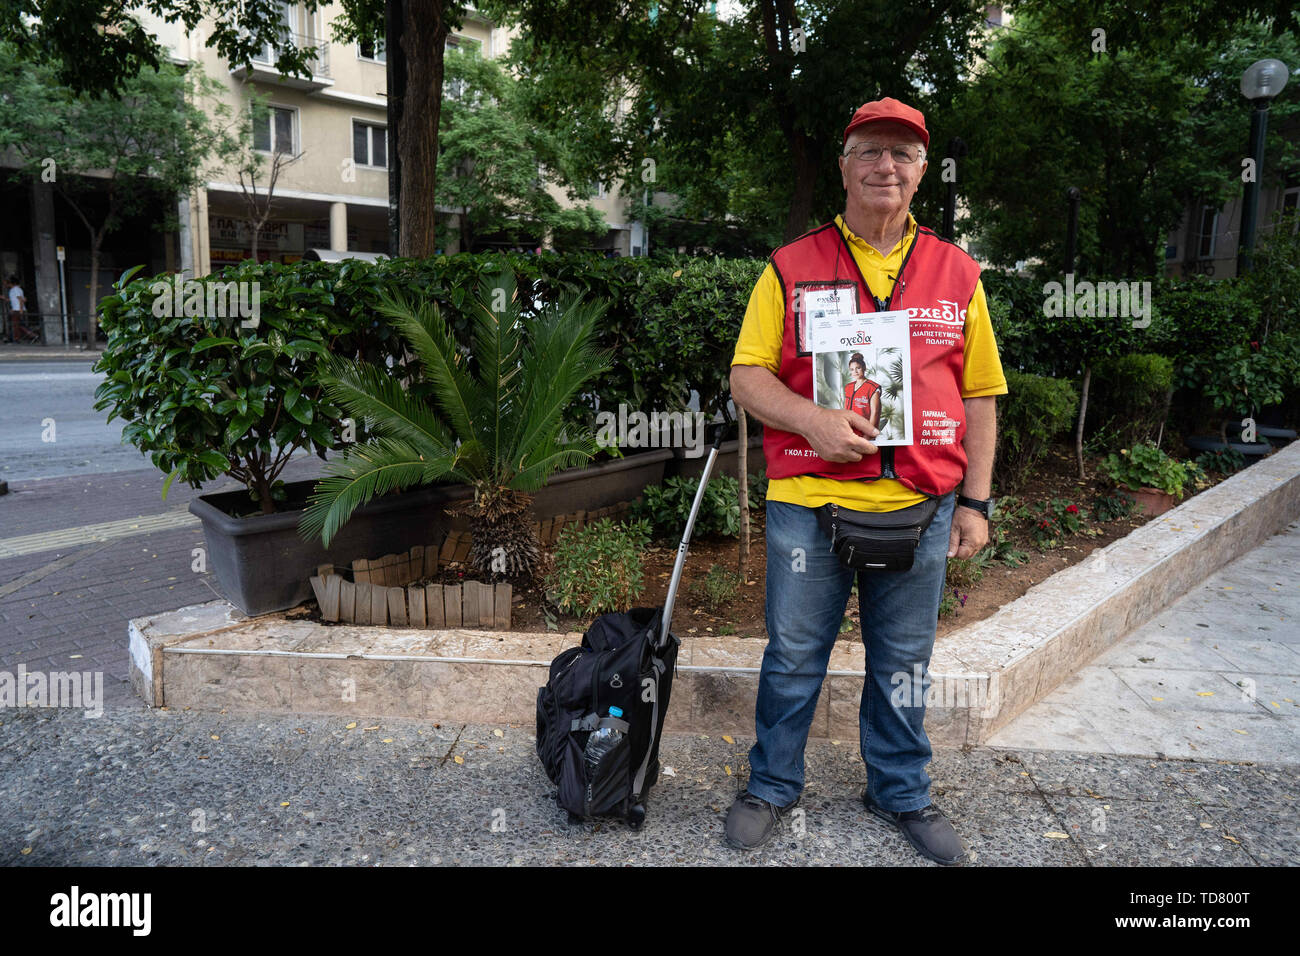 Athens, Athens, Greece. 12th June, 2019. Michael, 72, one of Shedia's street vendors, smiles at the camera with a copy of Shedia during the official tour.The tour of ''˜Invisible Athens' is organized by Shedia and goes into the parts of Athens that locals consider to be dangerous areas of the city and are generally avoided by tourists. Shedia is the only Greek street newspaper. The tour involves showing the conditions of homelessness in Athens. The Greek Ministry of Social Solidarity estimated that there were more than 1500 homeless people on the streets of Athens in 2018. (Credit Image: - Stock Image